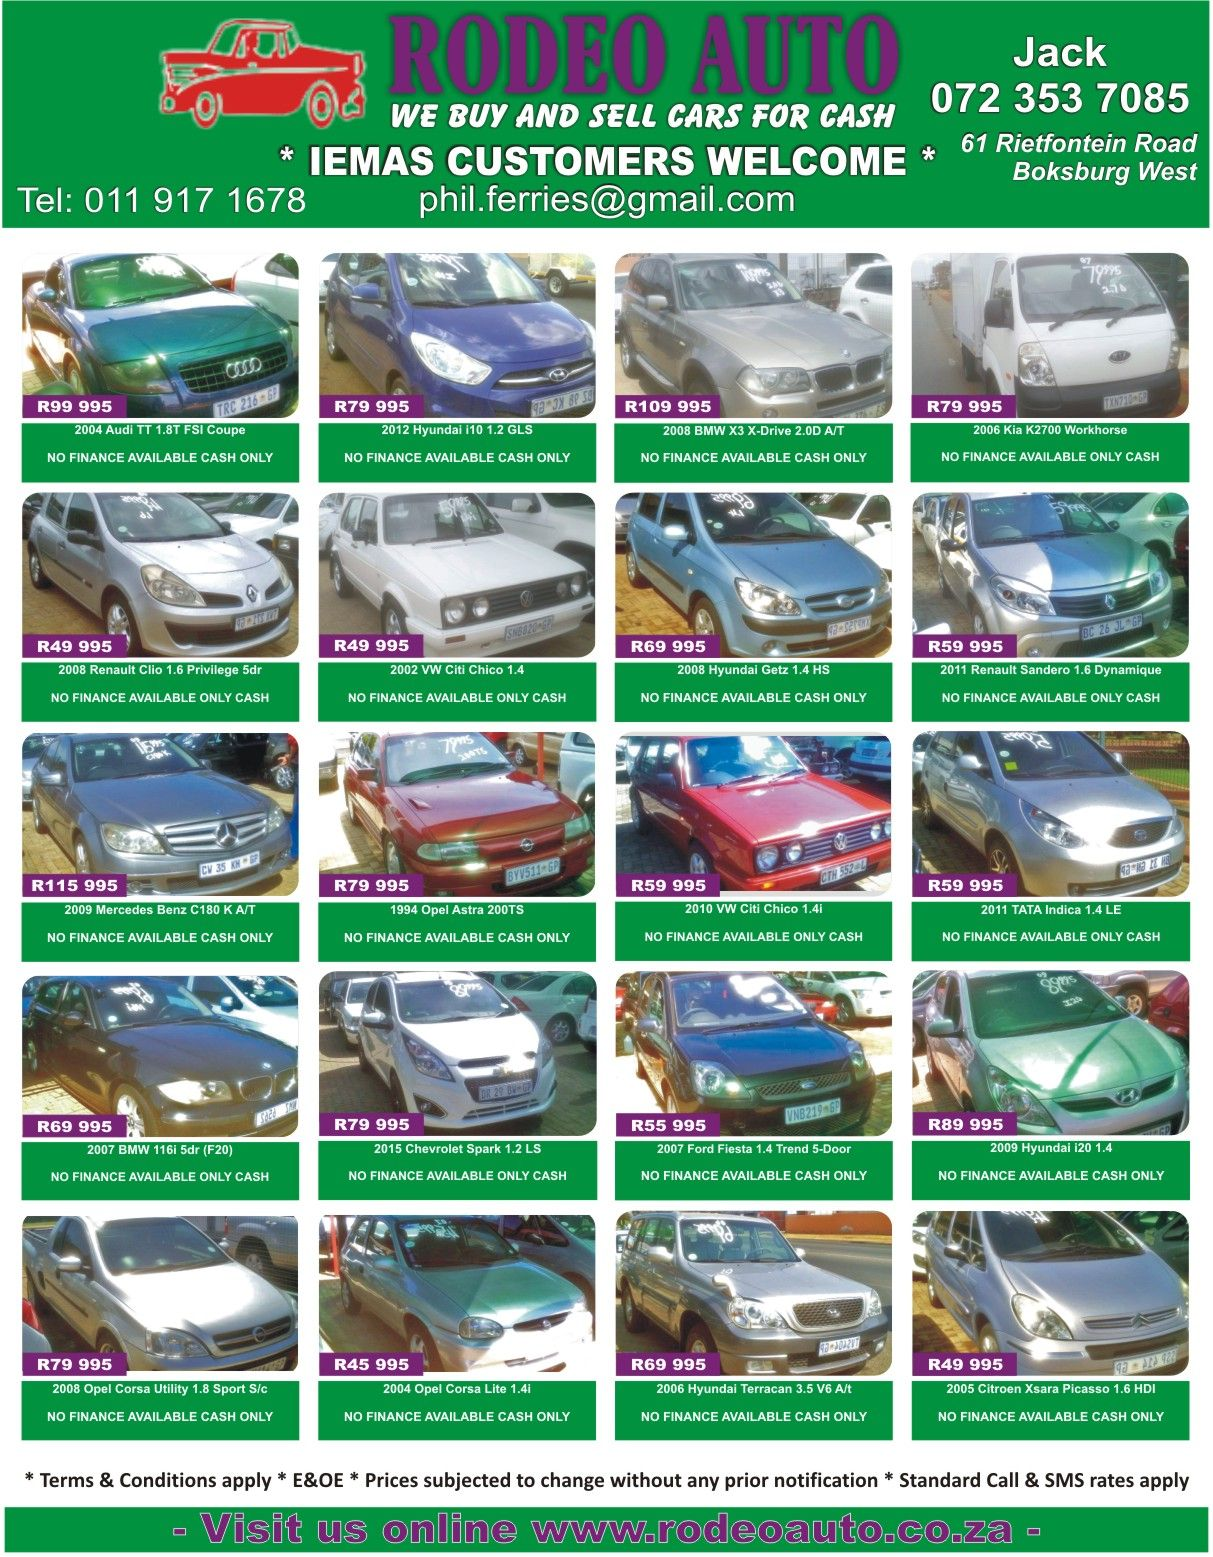 We Buy and Sell cars for cash Rodeo Auto Dont miss